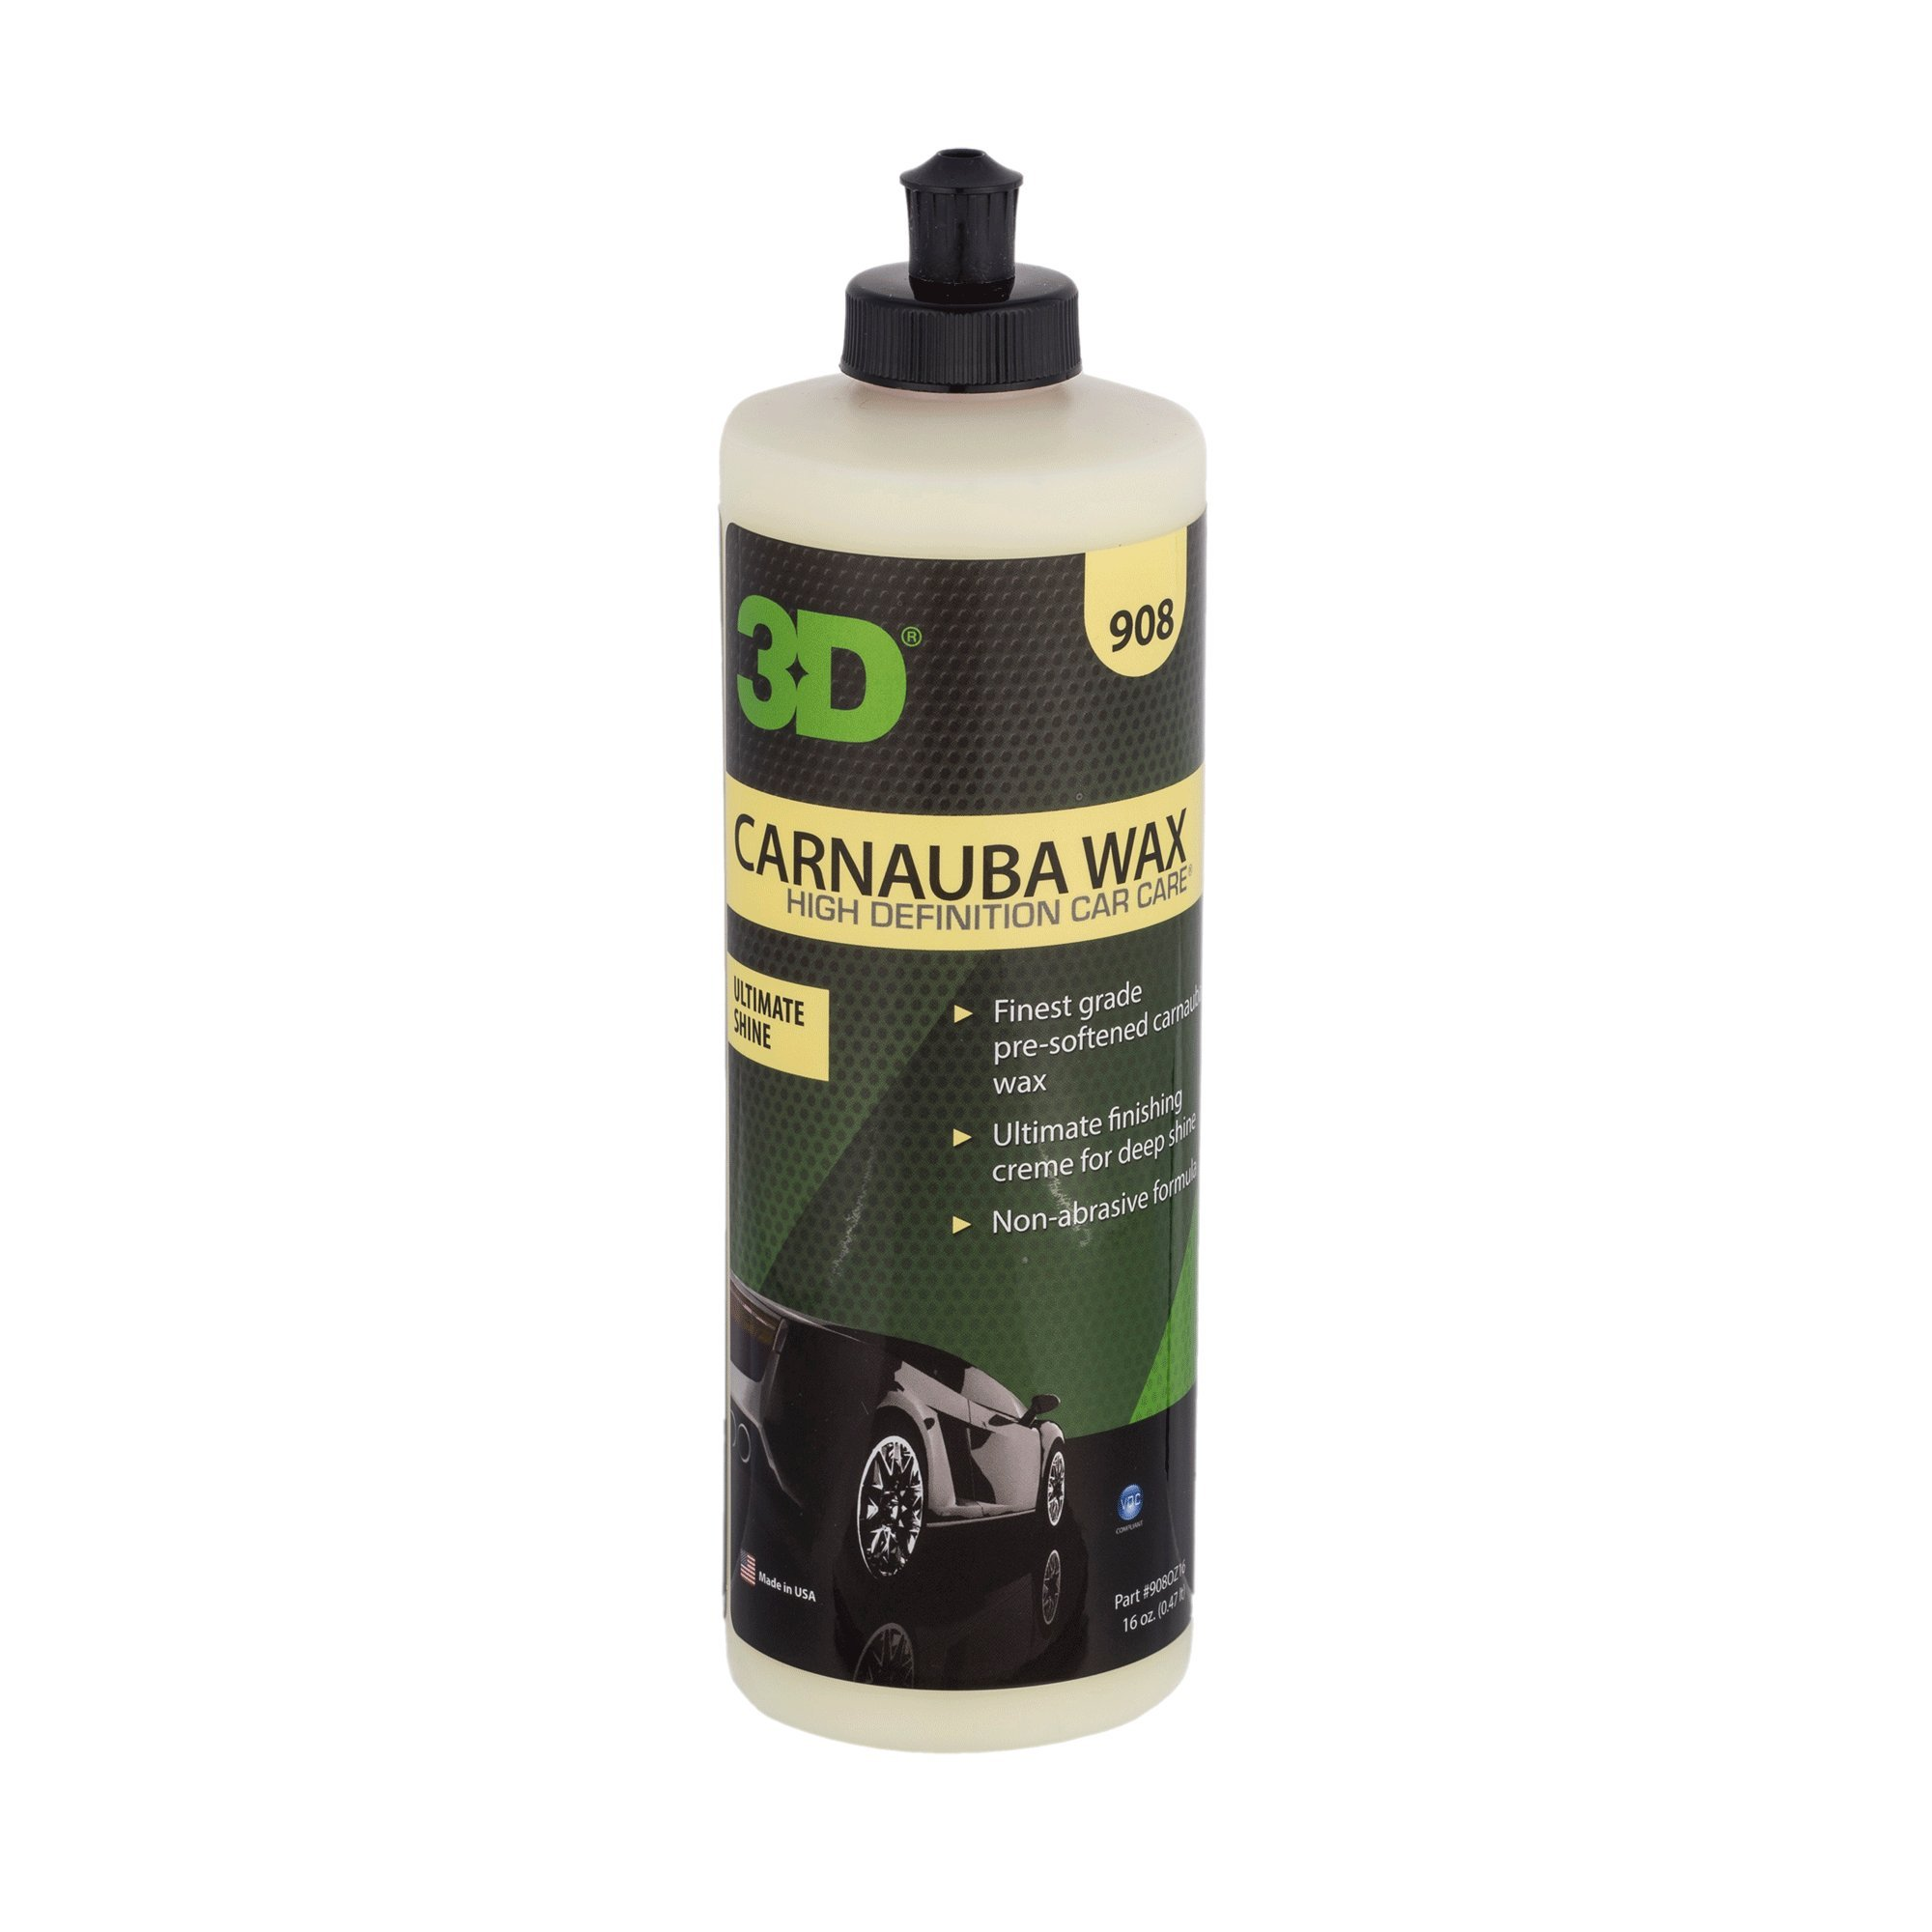 3D Carnauba Wax | Ultimate Protection & Deep Shine | Easy to Apply | Safe for Clear Coat & Conventional Paint Surfaces | Made in USA | All Natural | No Harmful Chemicals (16oz.)